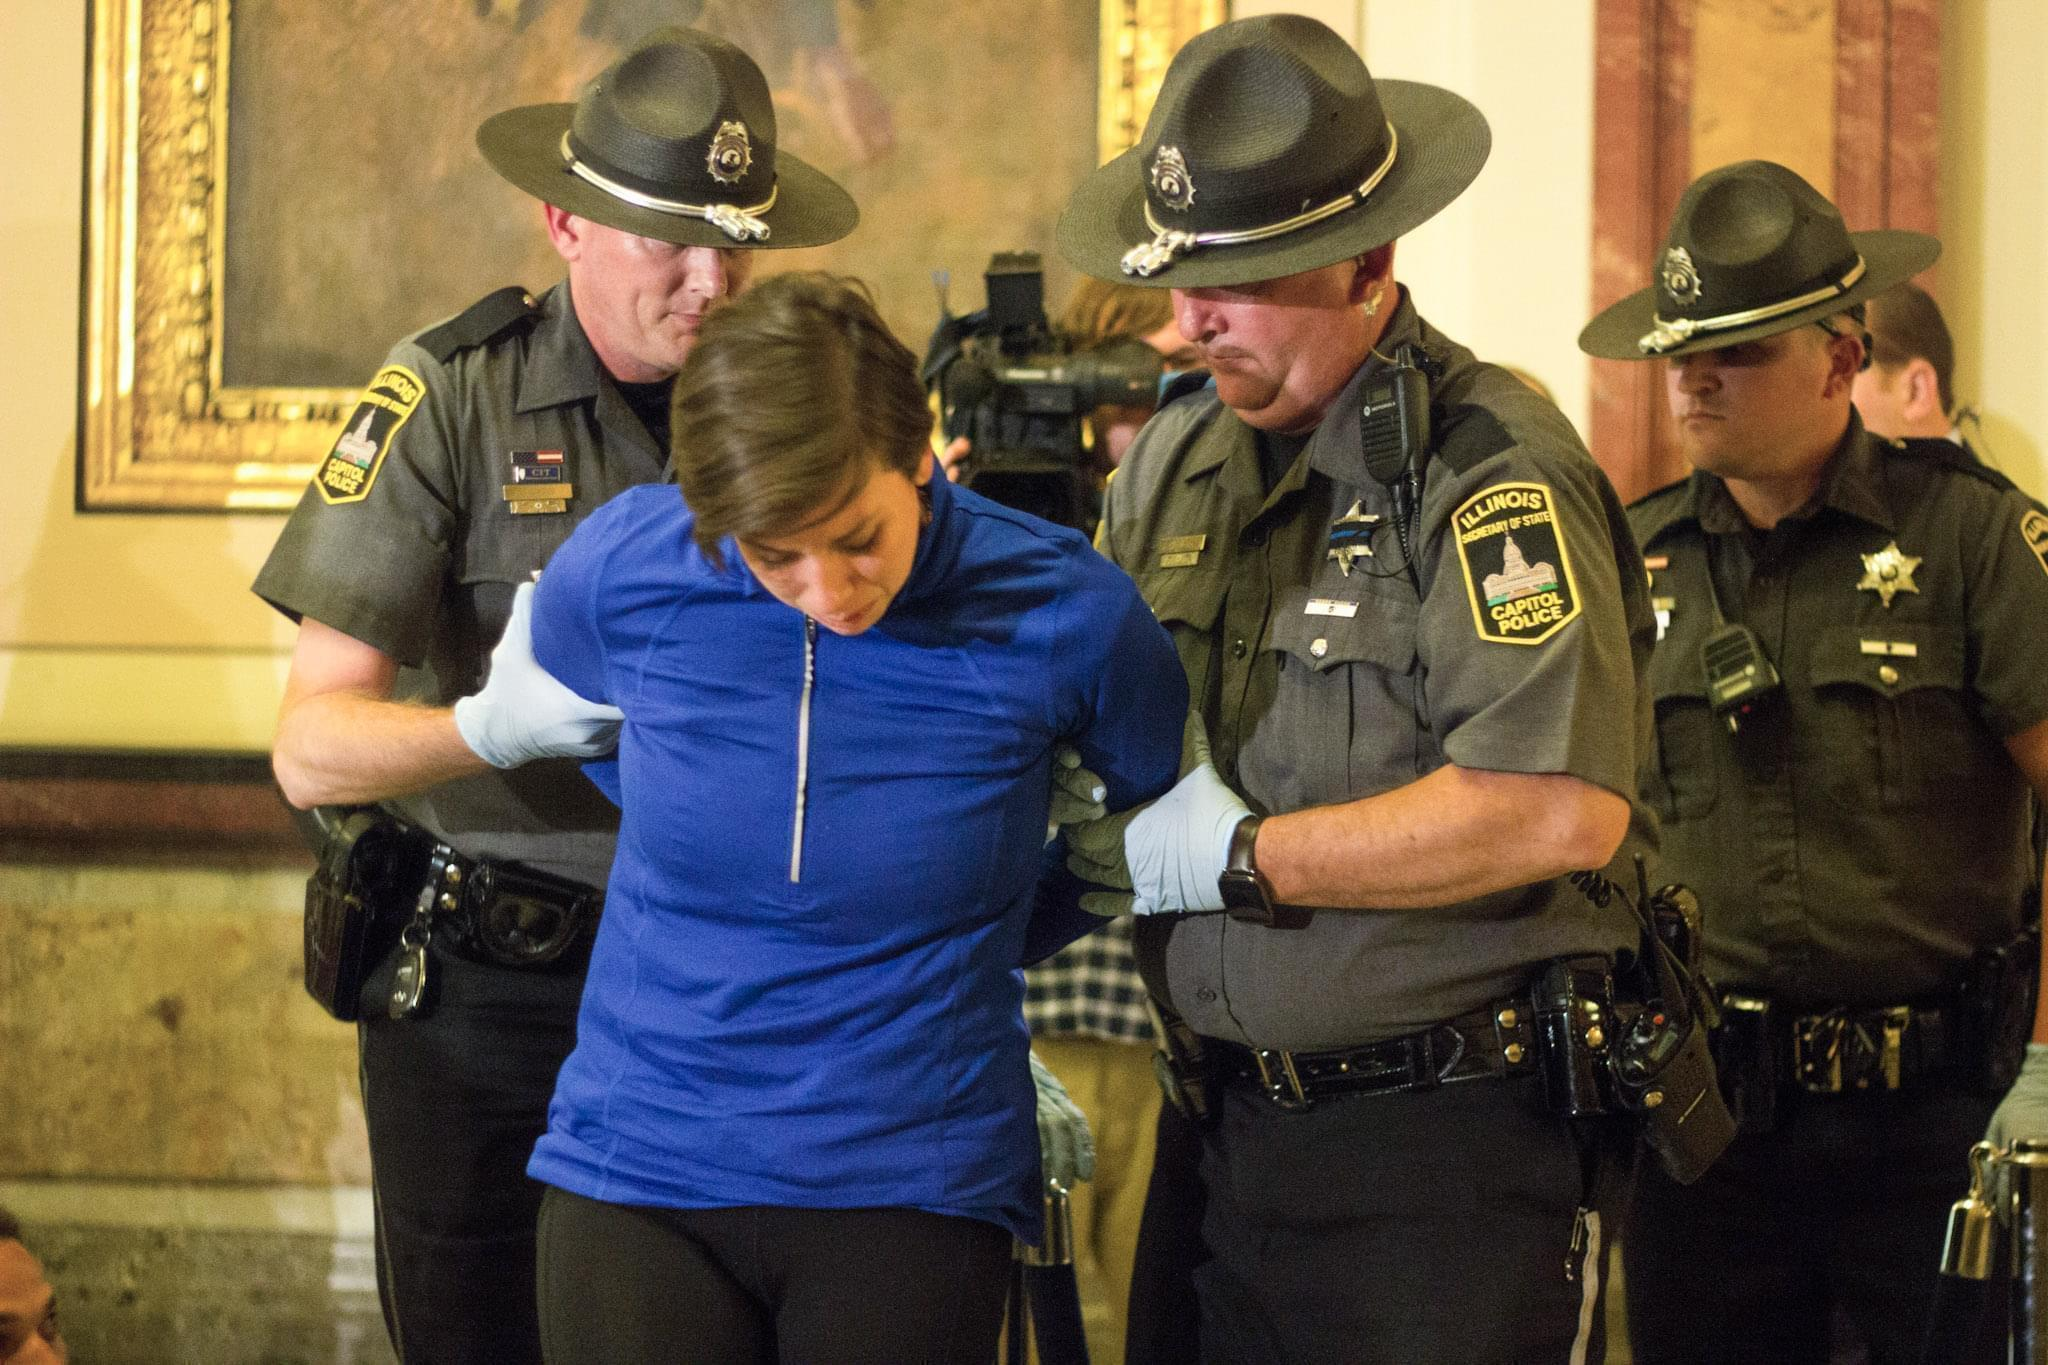 A protester being arrested at the Illinois state capitol on Tuesday evening